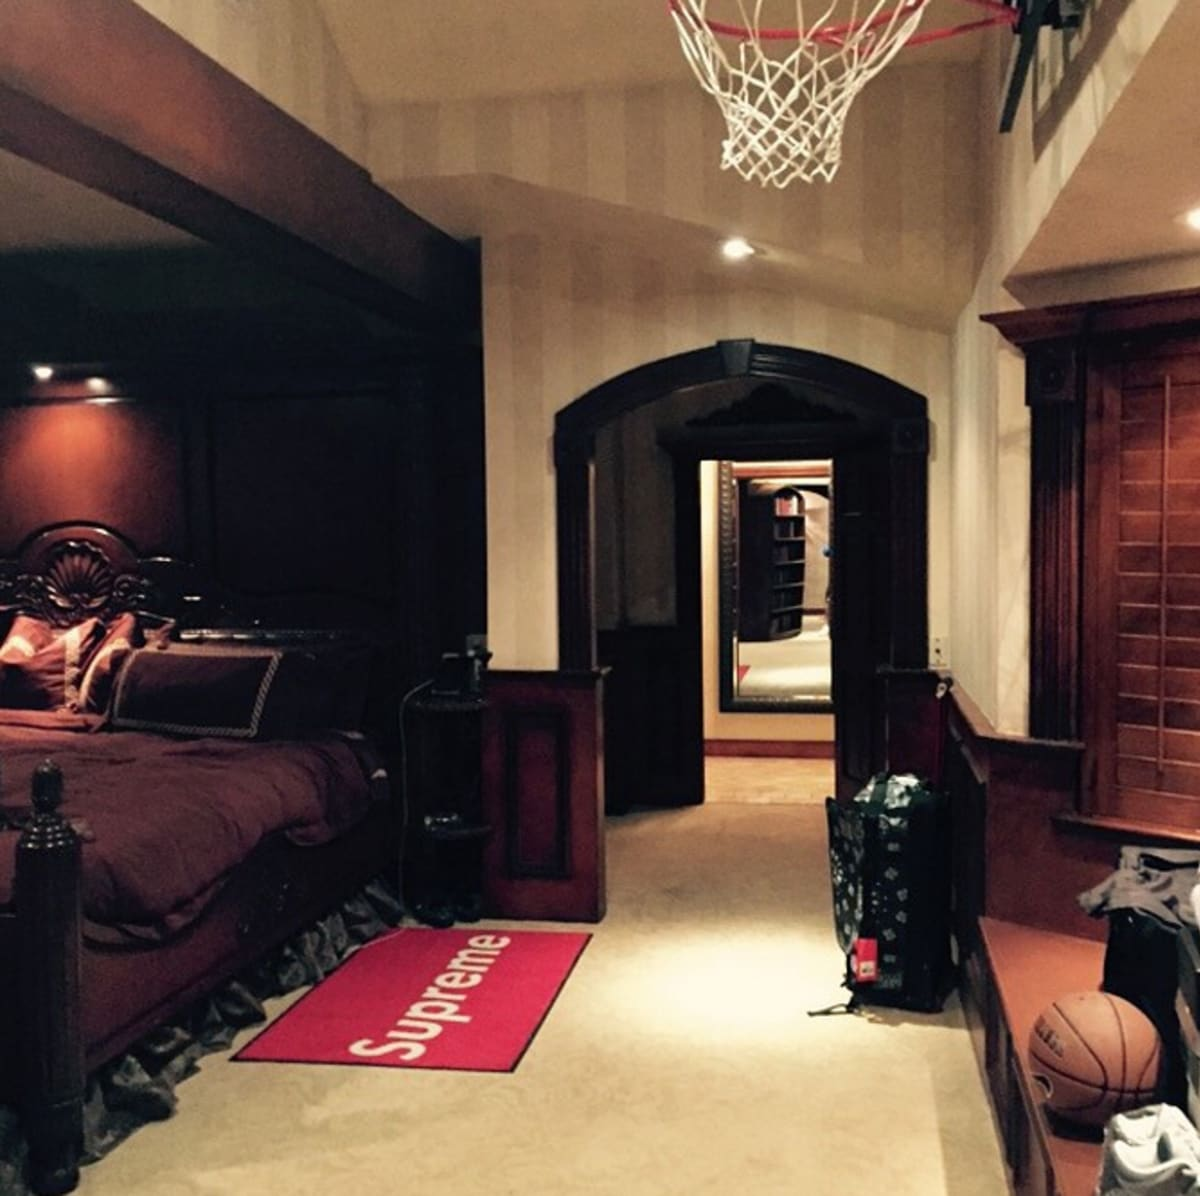 Drakeu0027s Bedroom Is Decorated With A Supreme Rug And A Basketball Hoop |  Complex